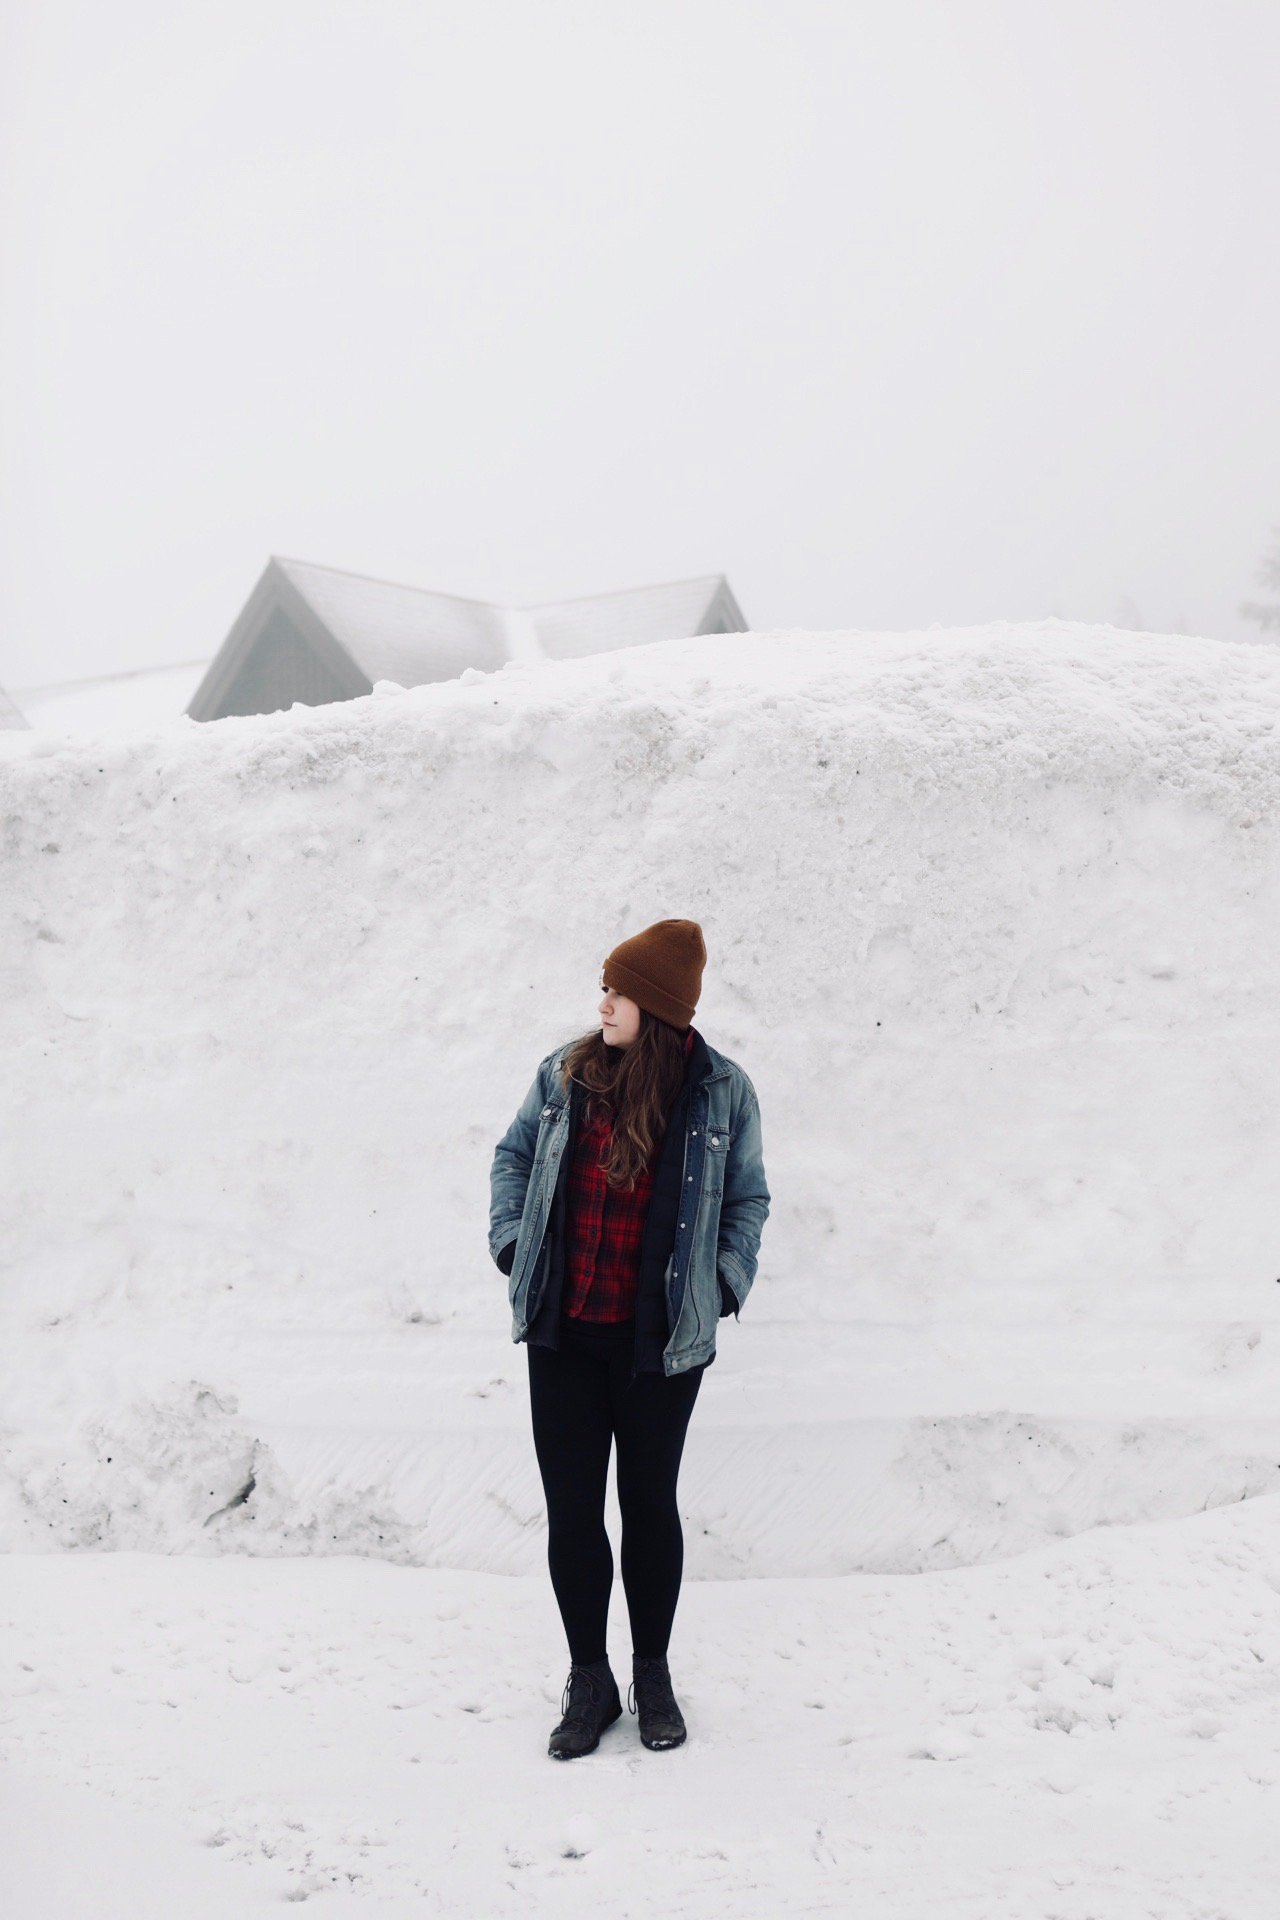 Me at Crater Lake Visitor Center; Image by Ben Ashby